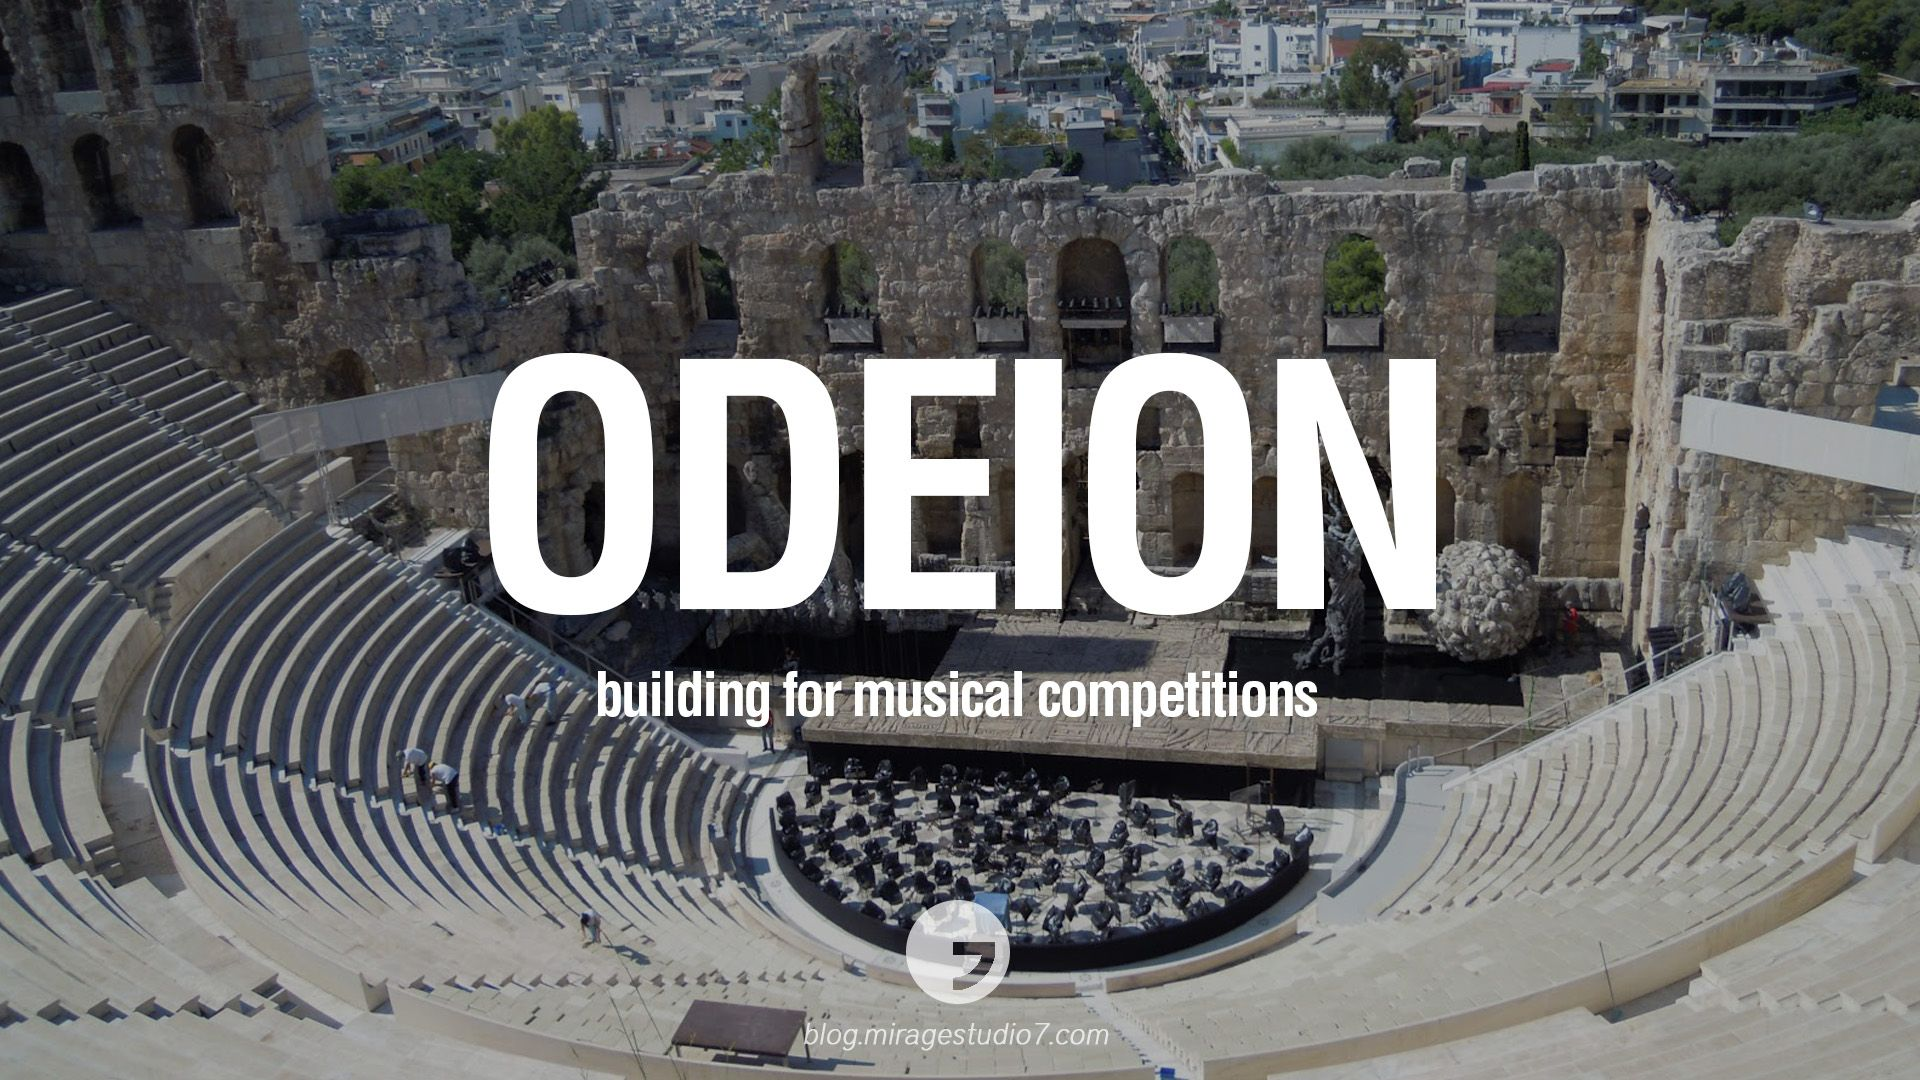 Odeion Building For Musical Competitions Beautiful Latin And Ancient Greek Architecture Words Instagram Facebook Twitter